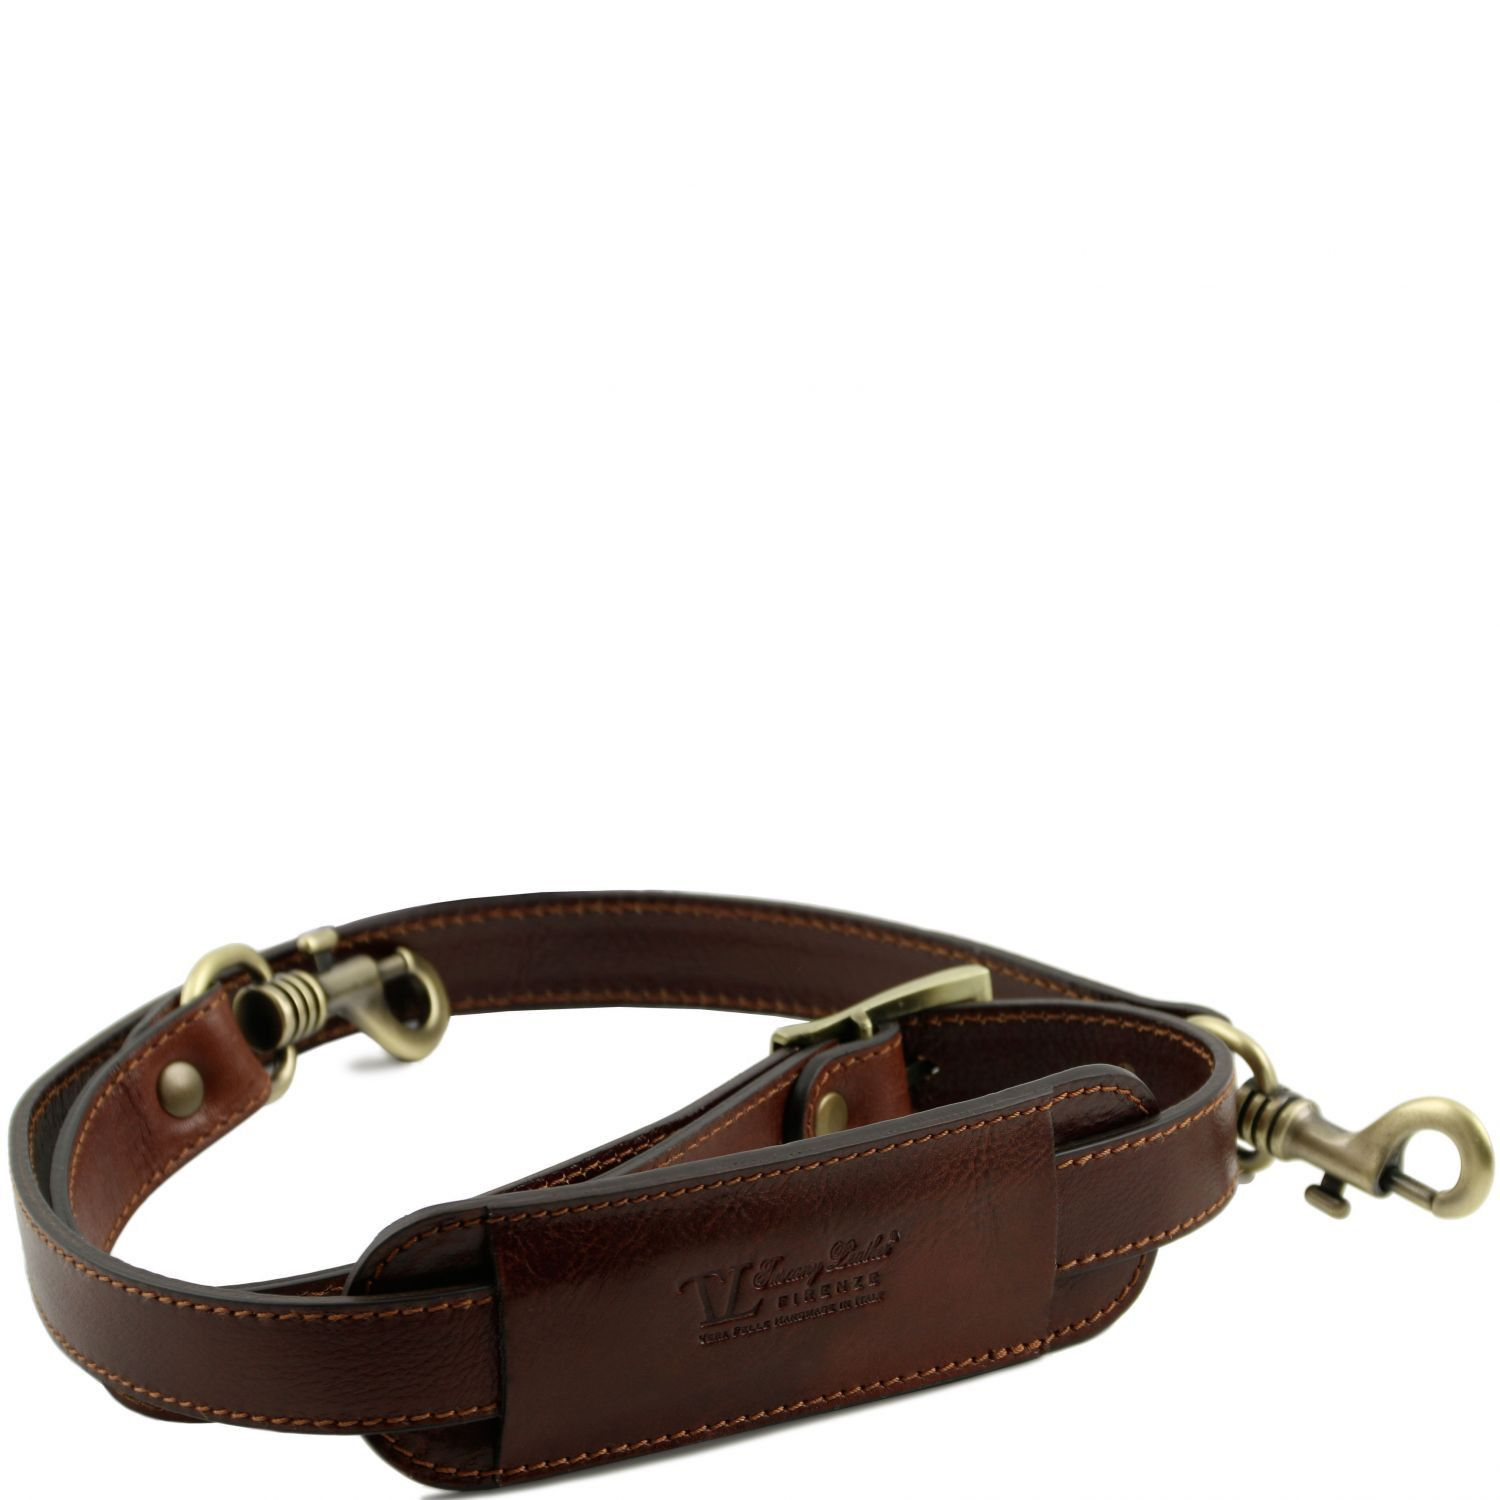 Bilde av Adjustable leather shoulder strap Brown